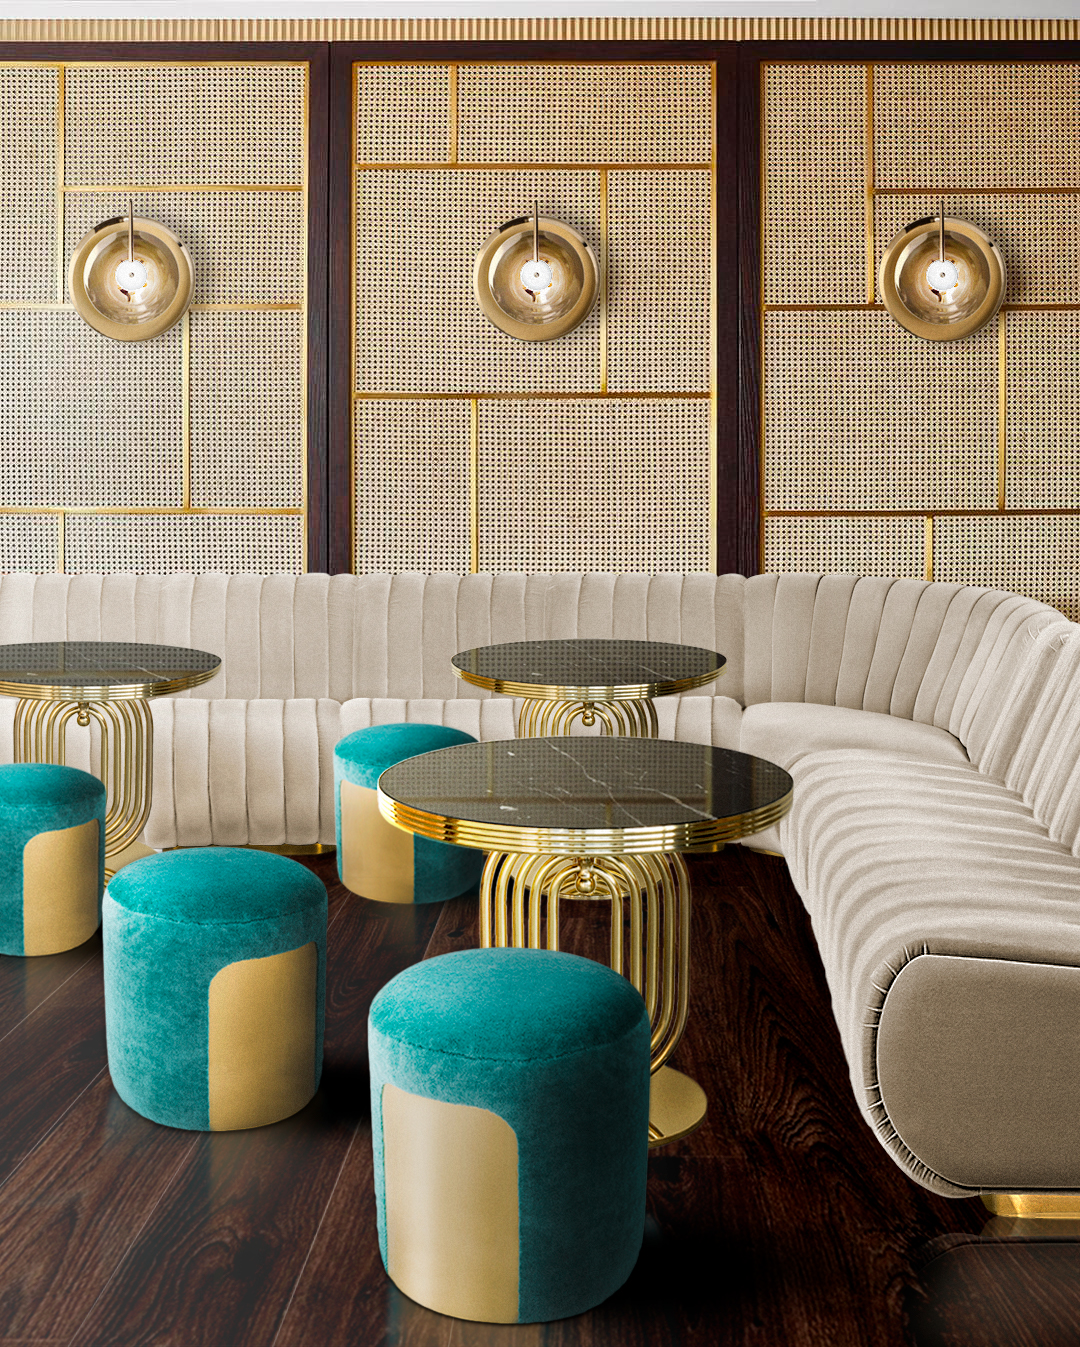 STATEMENT PIECES FOR THE ULTIMATE RESTAURANT PROJECT